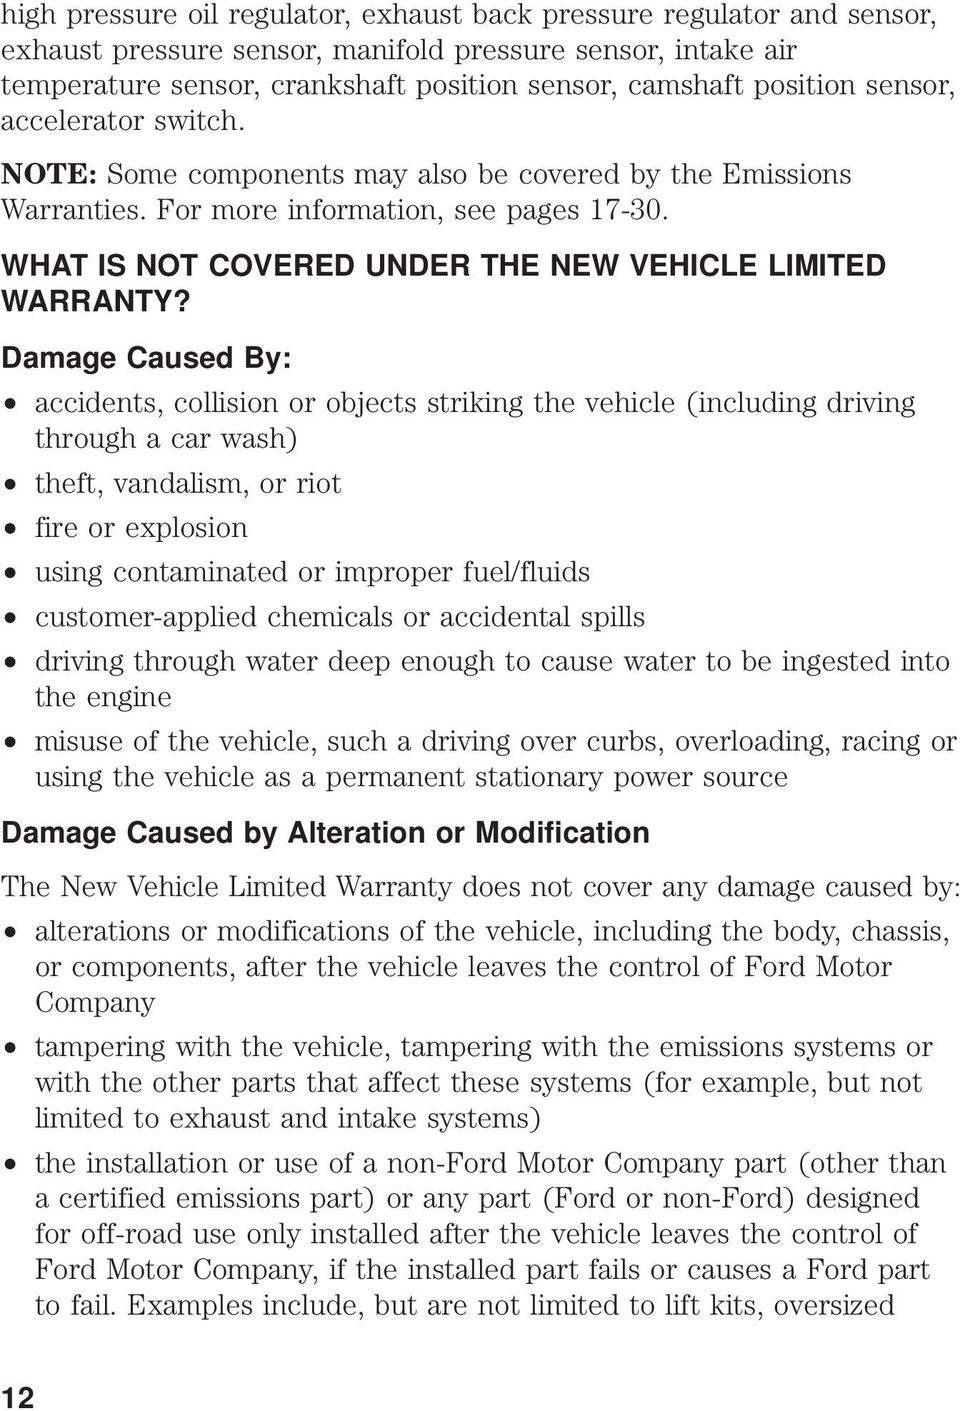 WHAT IS NOT COVERED UNDER THE NEW VEHICLE LIMITED WARRANTY?